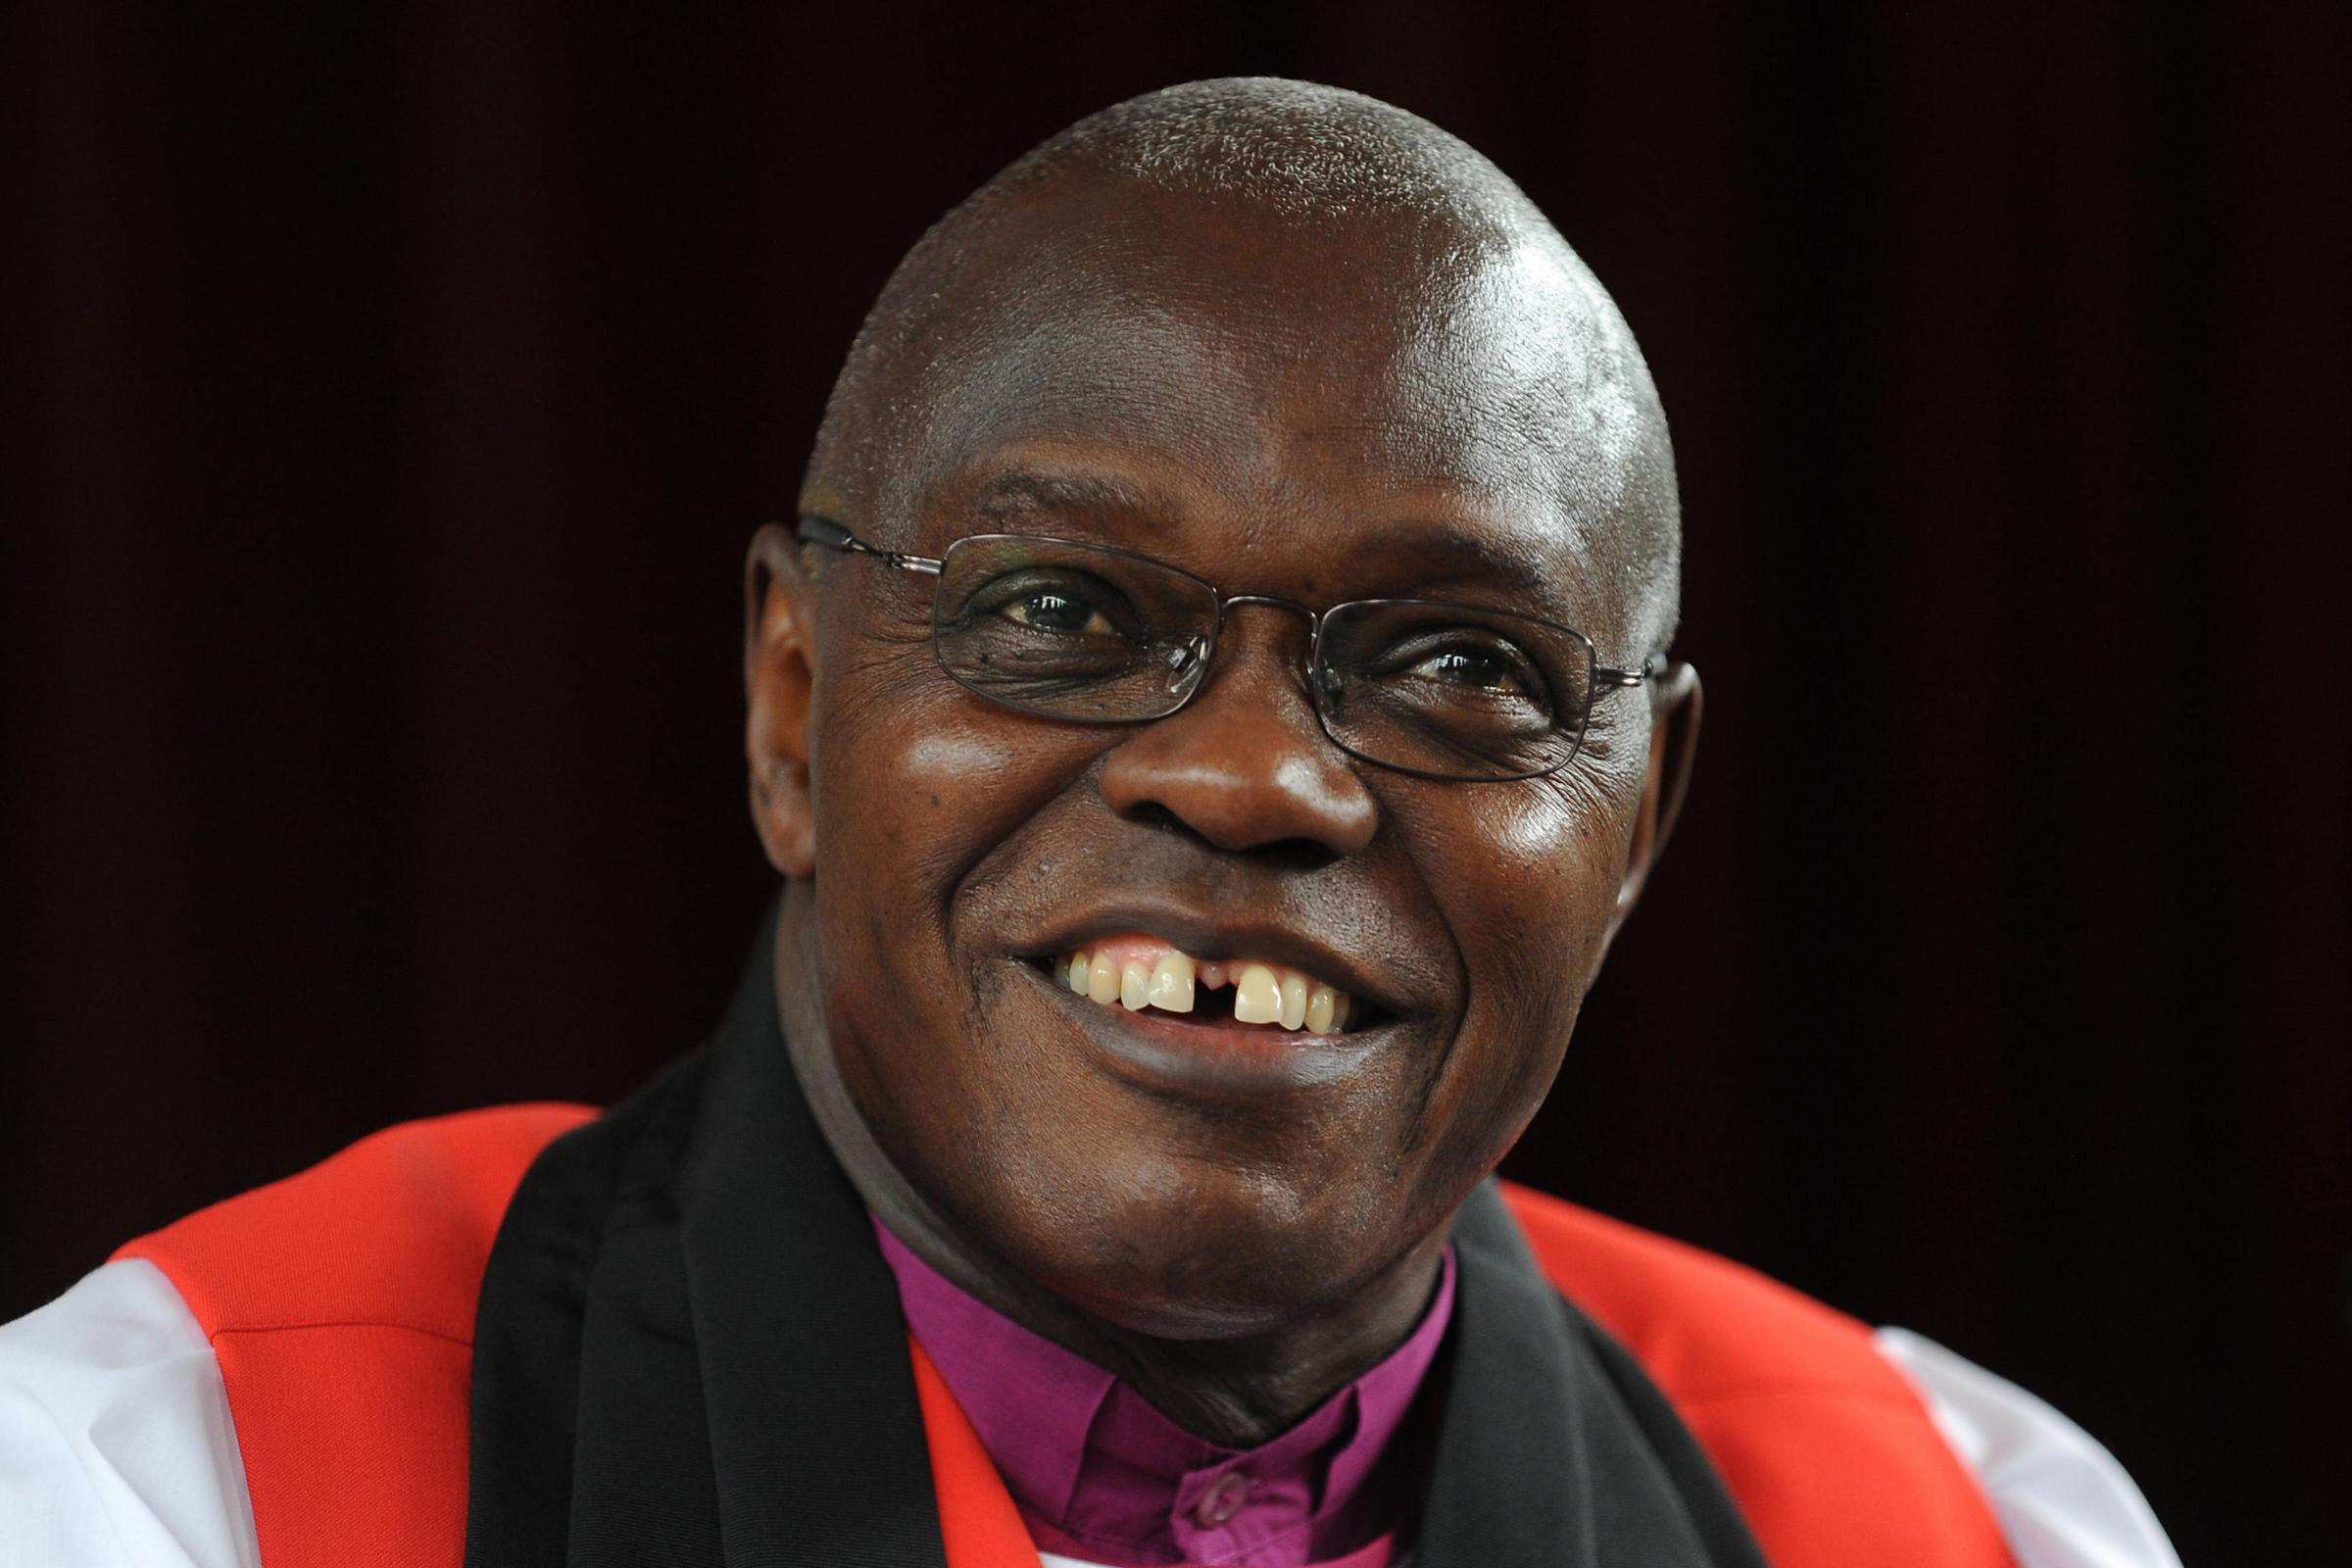 Archbishop of York in appeal for 'safe zone' over conflict